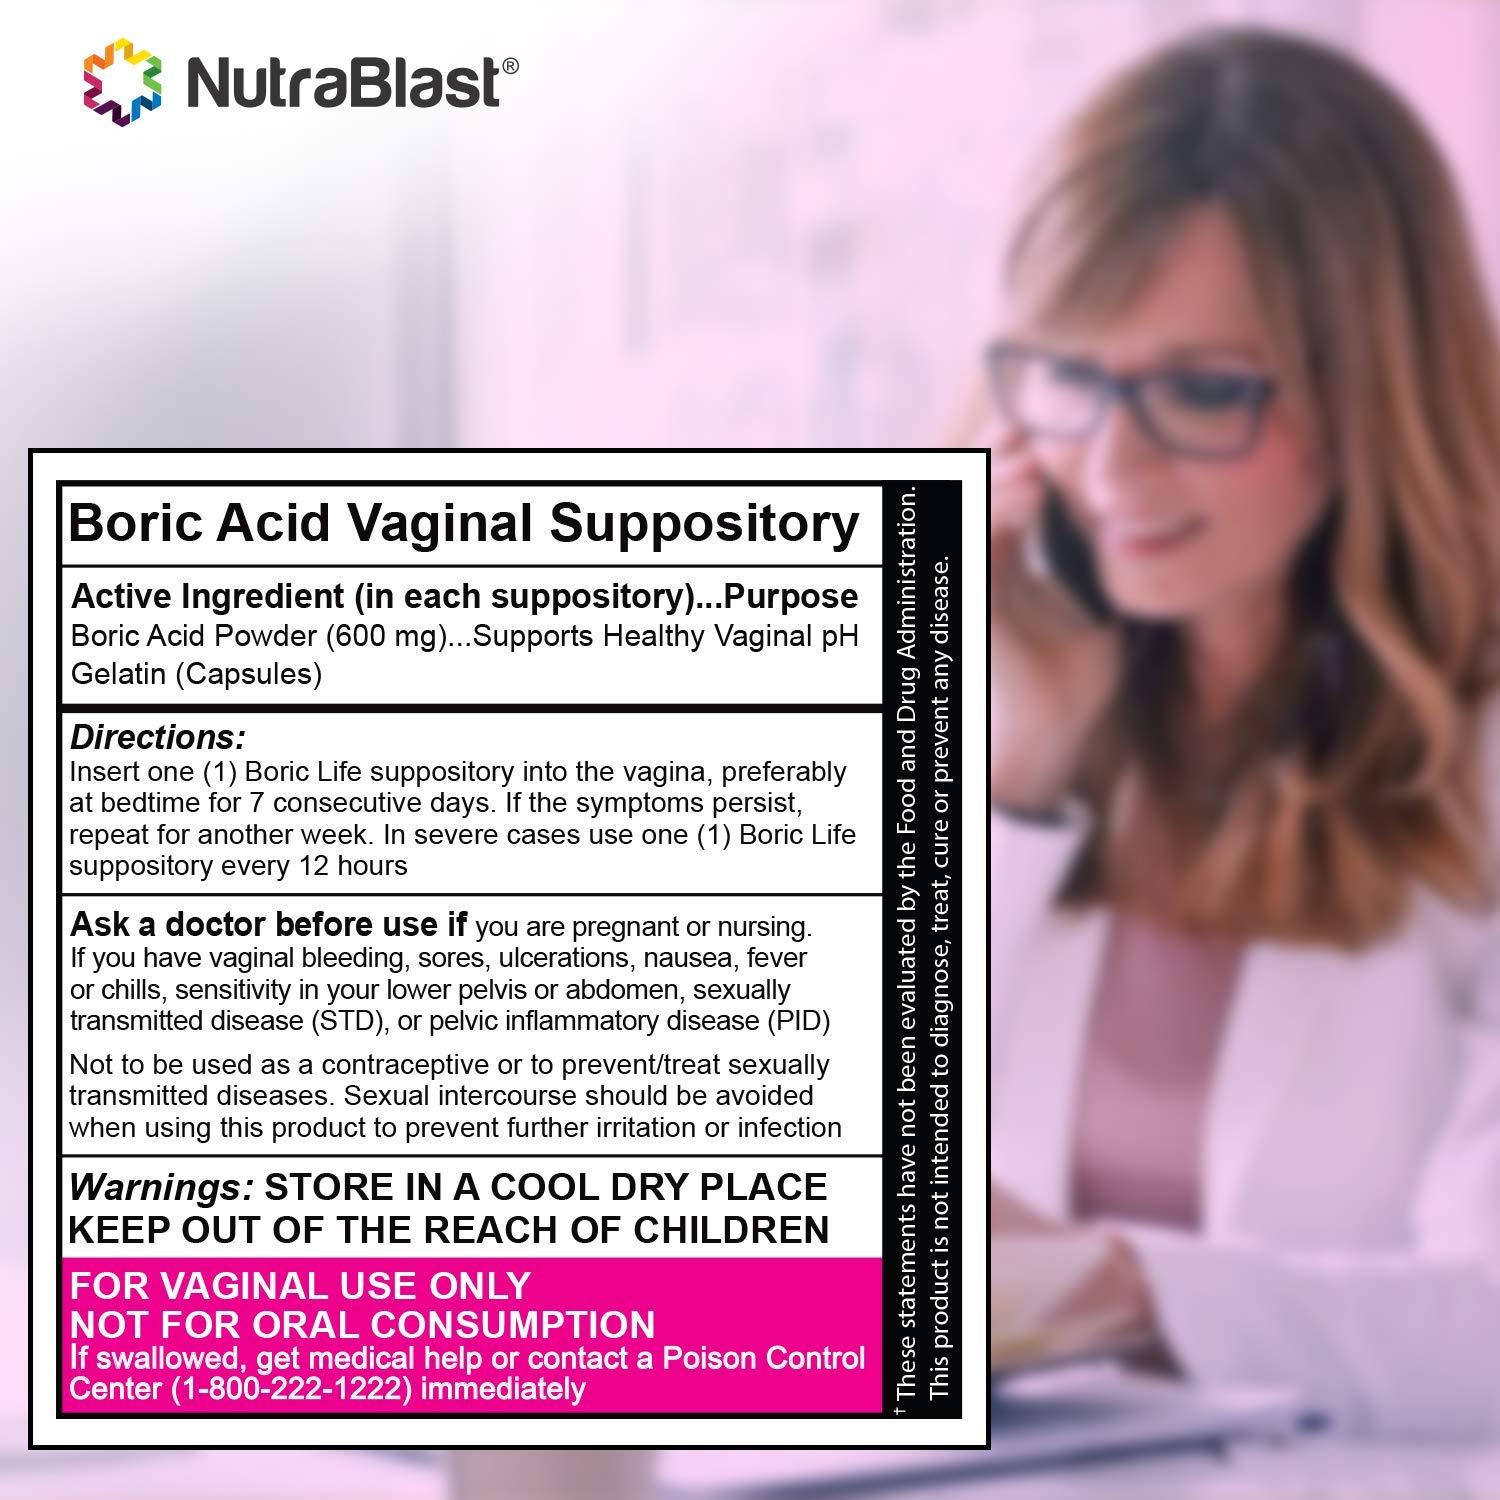 NutraBlast Boric Acid Vaginal Suppositories - 60 Count, 600mg - 100% Pure Made in USA - Boric Life Intimate Health Support